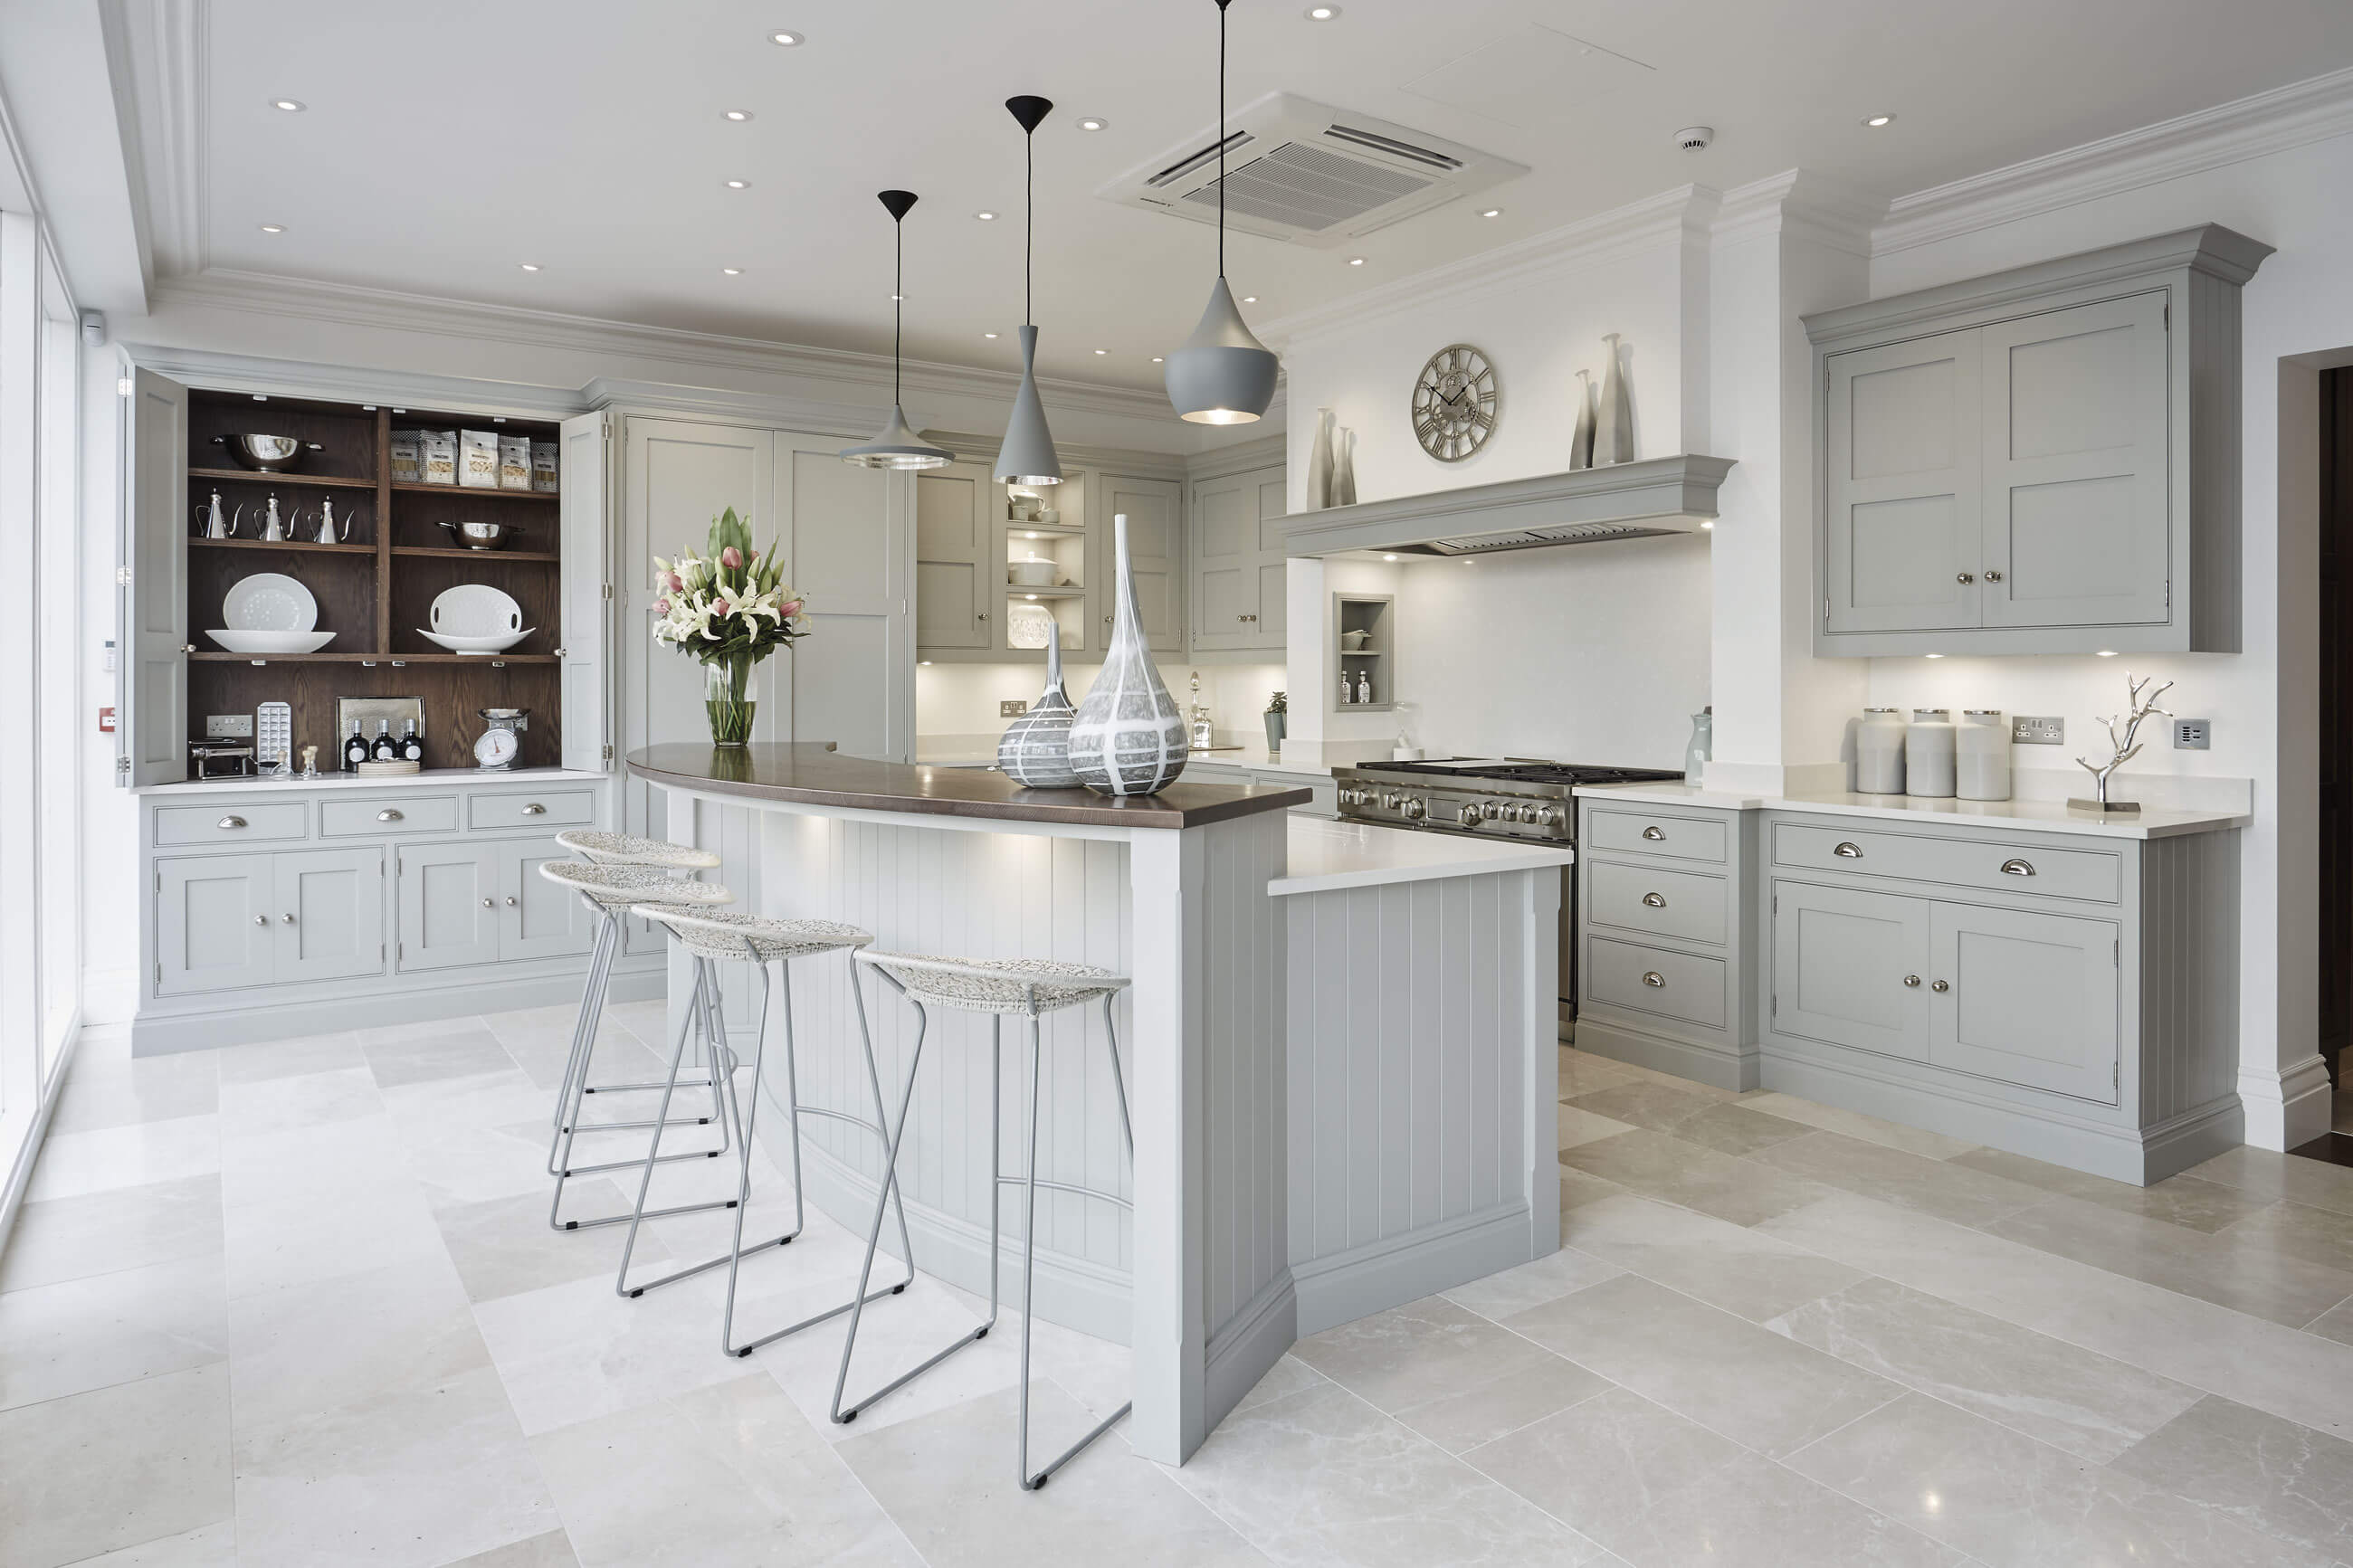 Grey family kitchen tom howley for House kitchen images